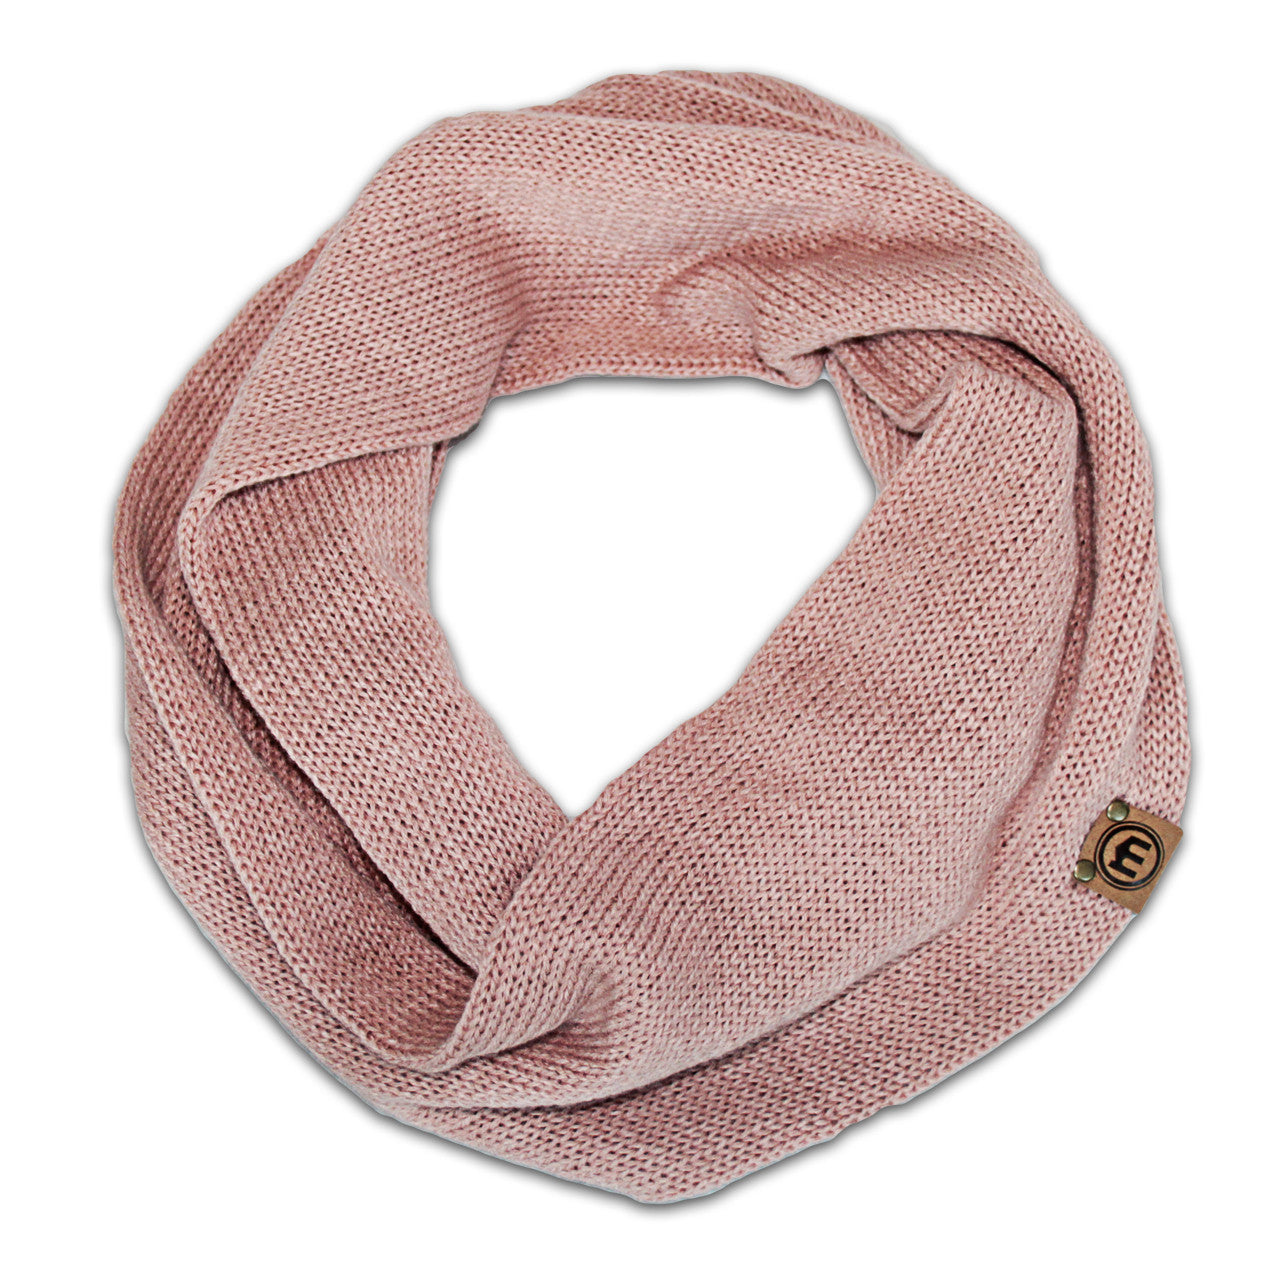 breast res inflow ribbon cancer awareness p content inflowcomponent pink infinity global s scarf cancel ebay